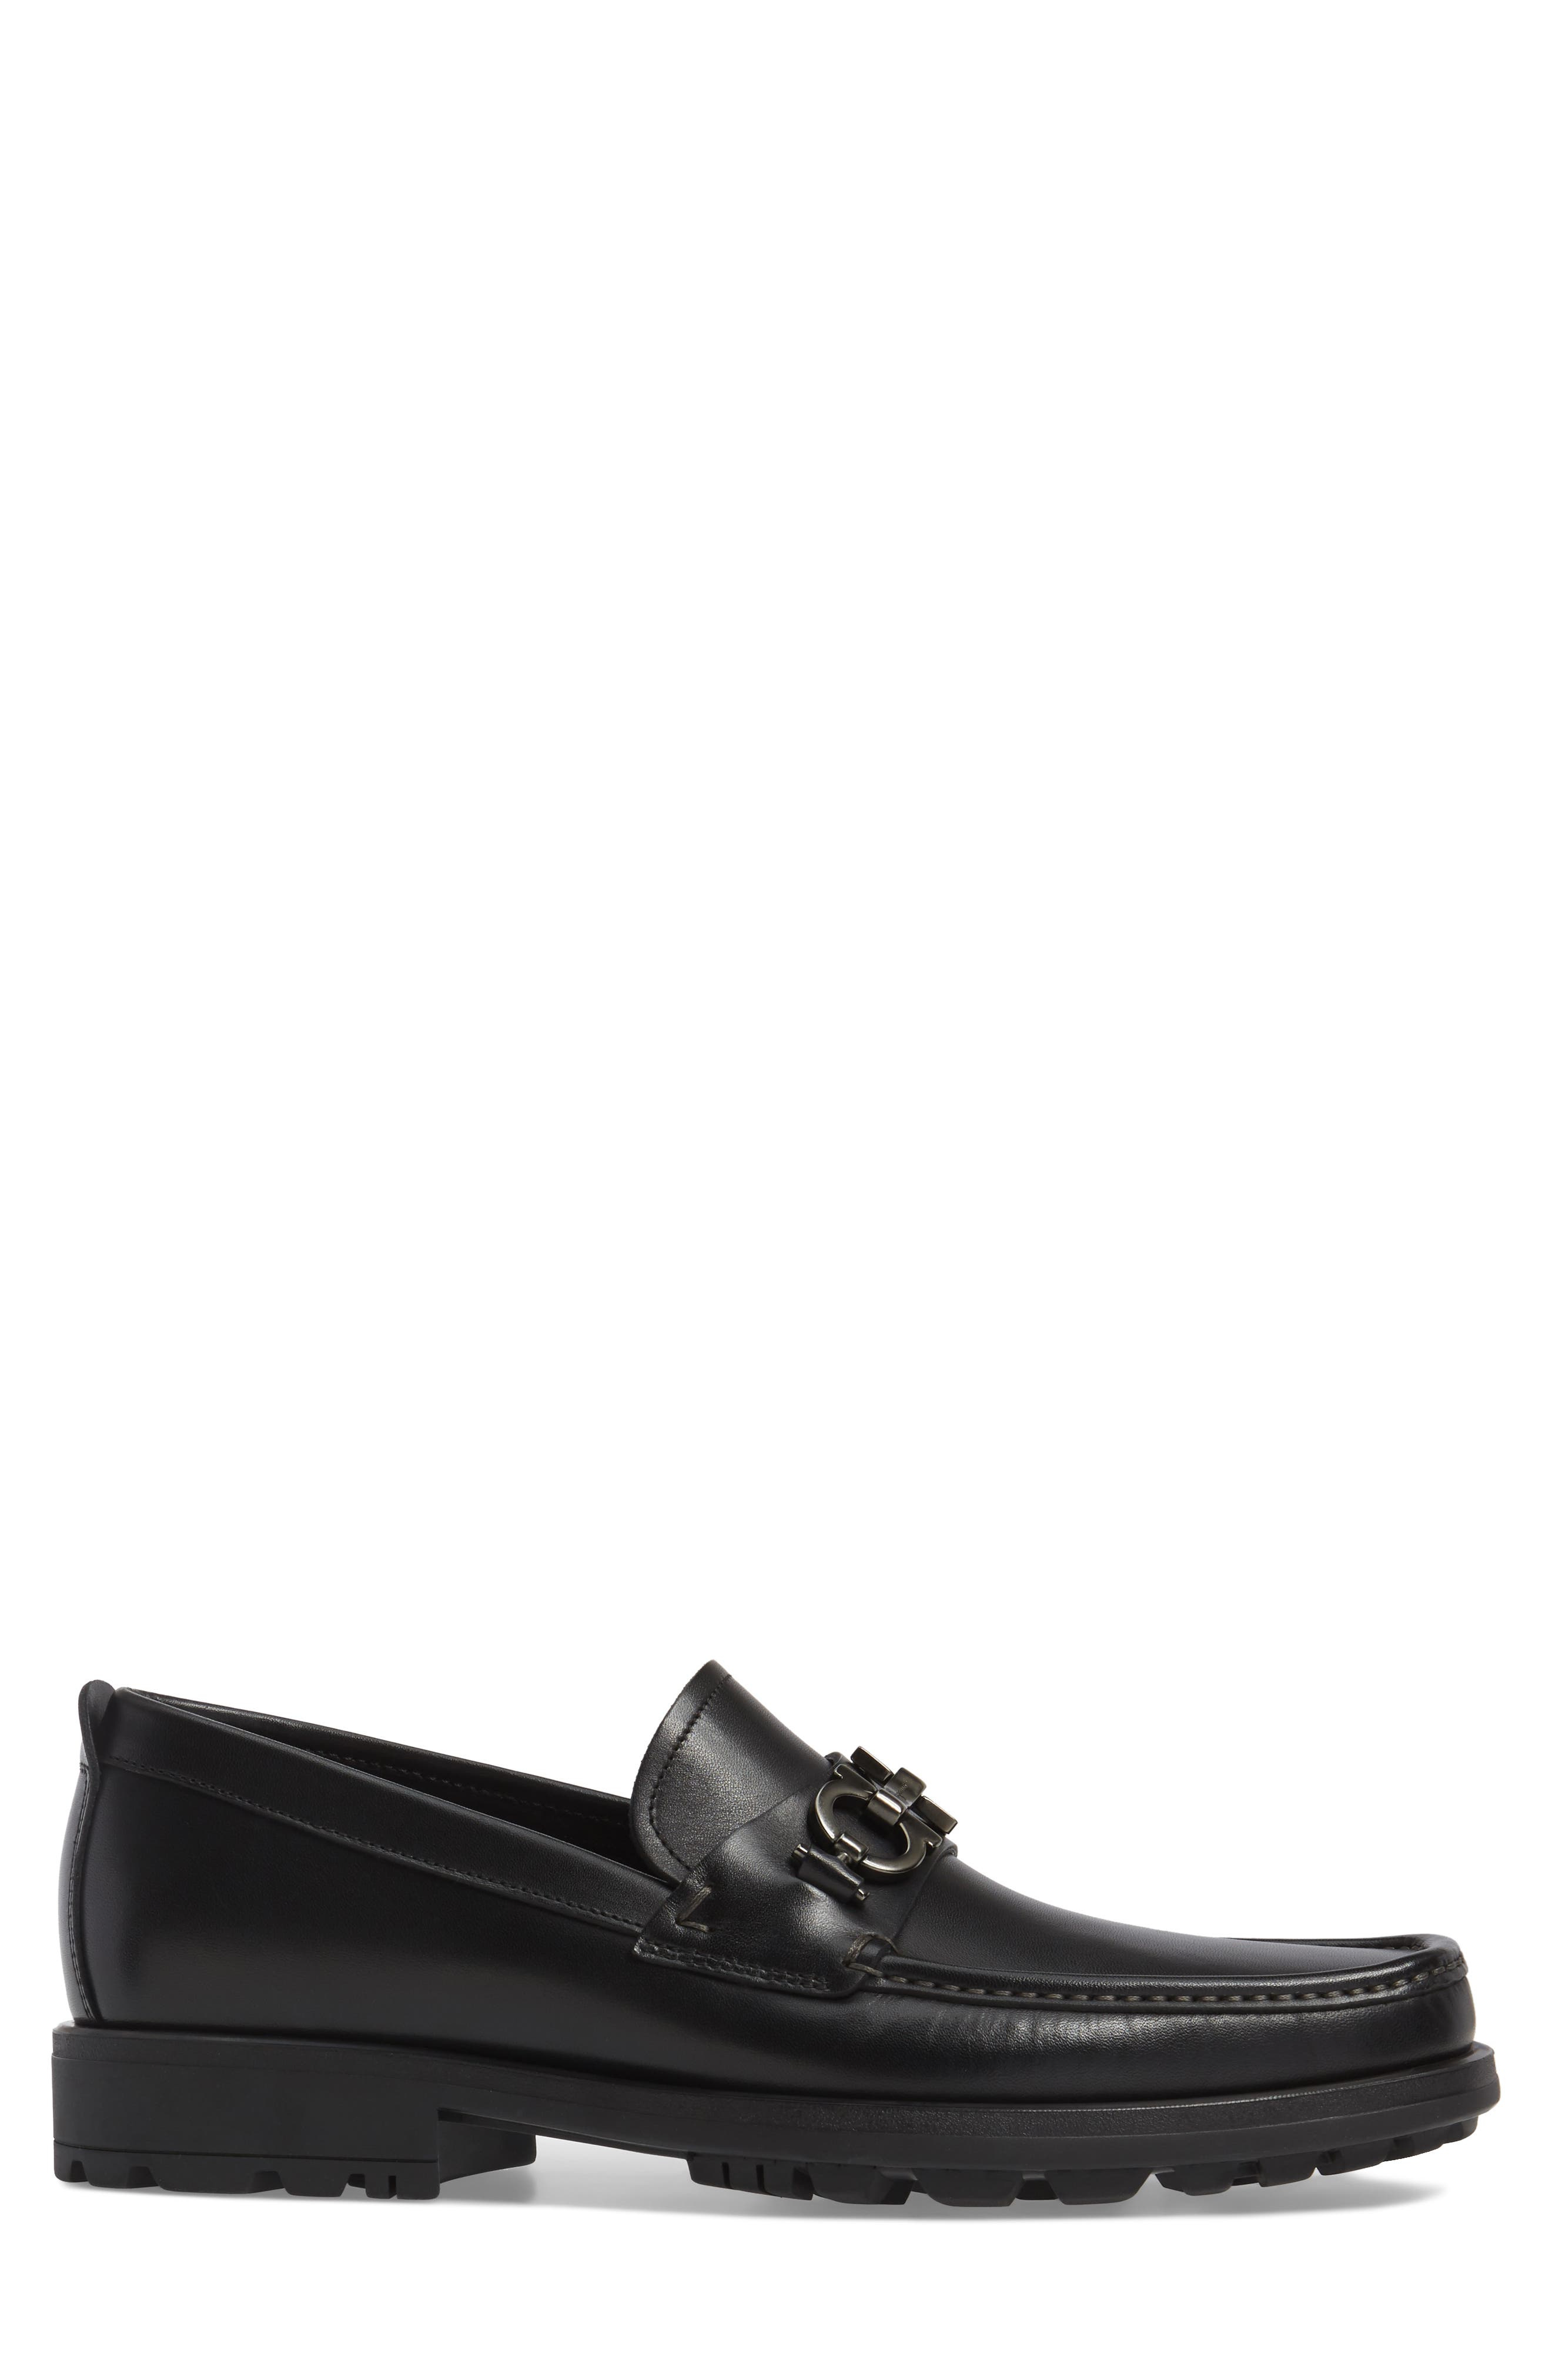 David Bit Loafer,                             Alternate thumbnail 3, color,                             BLACK LEATHER